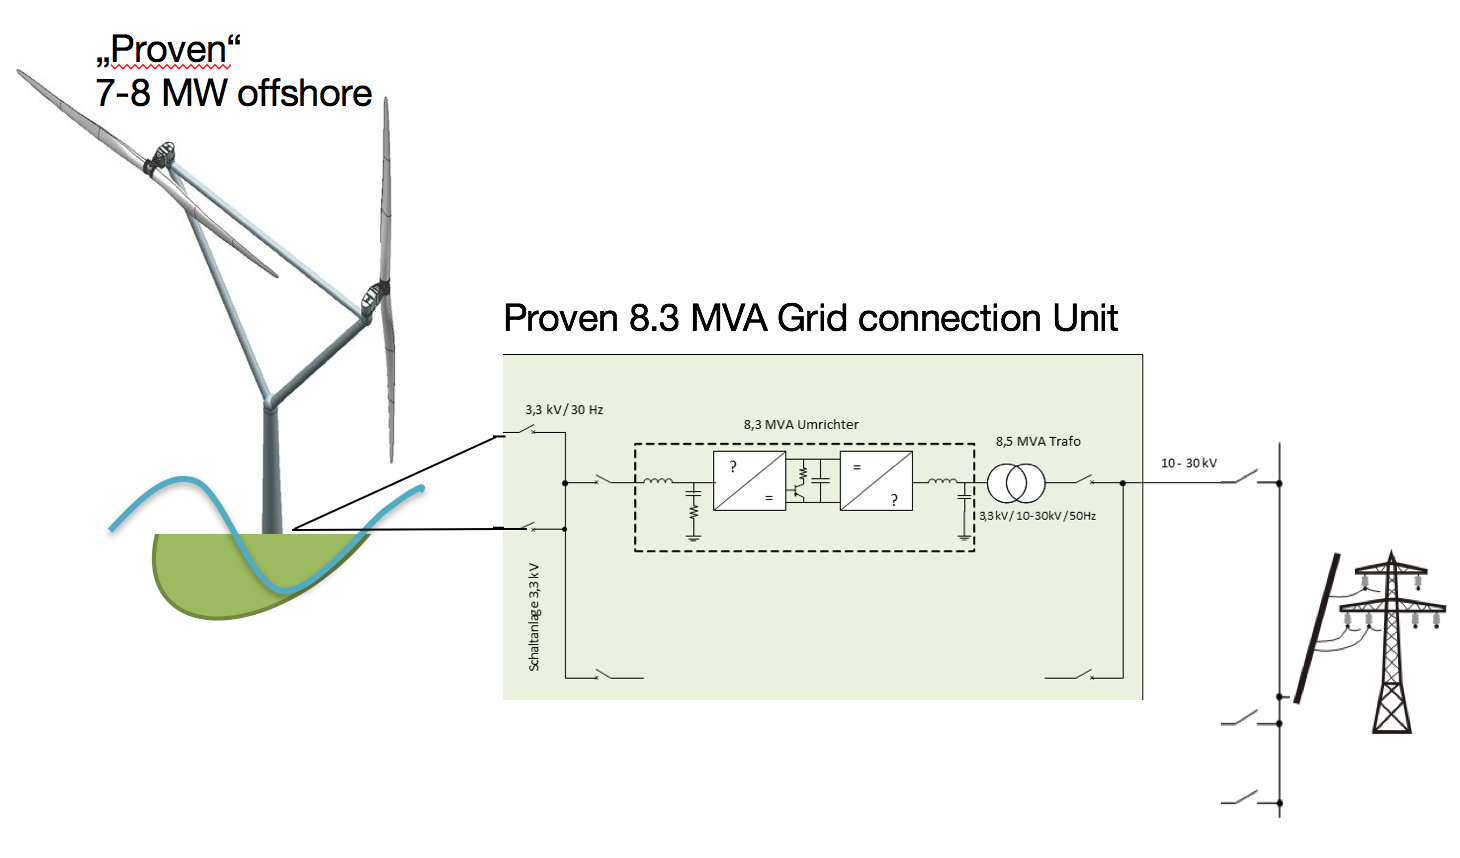 electrical system, external grid connection unit